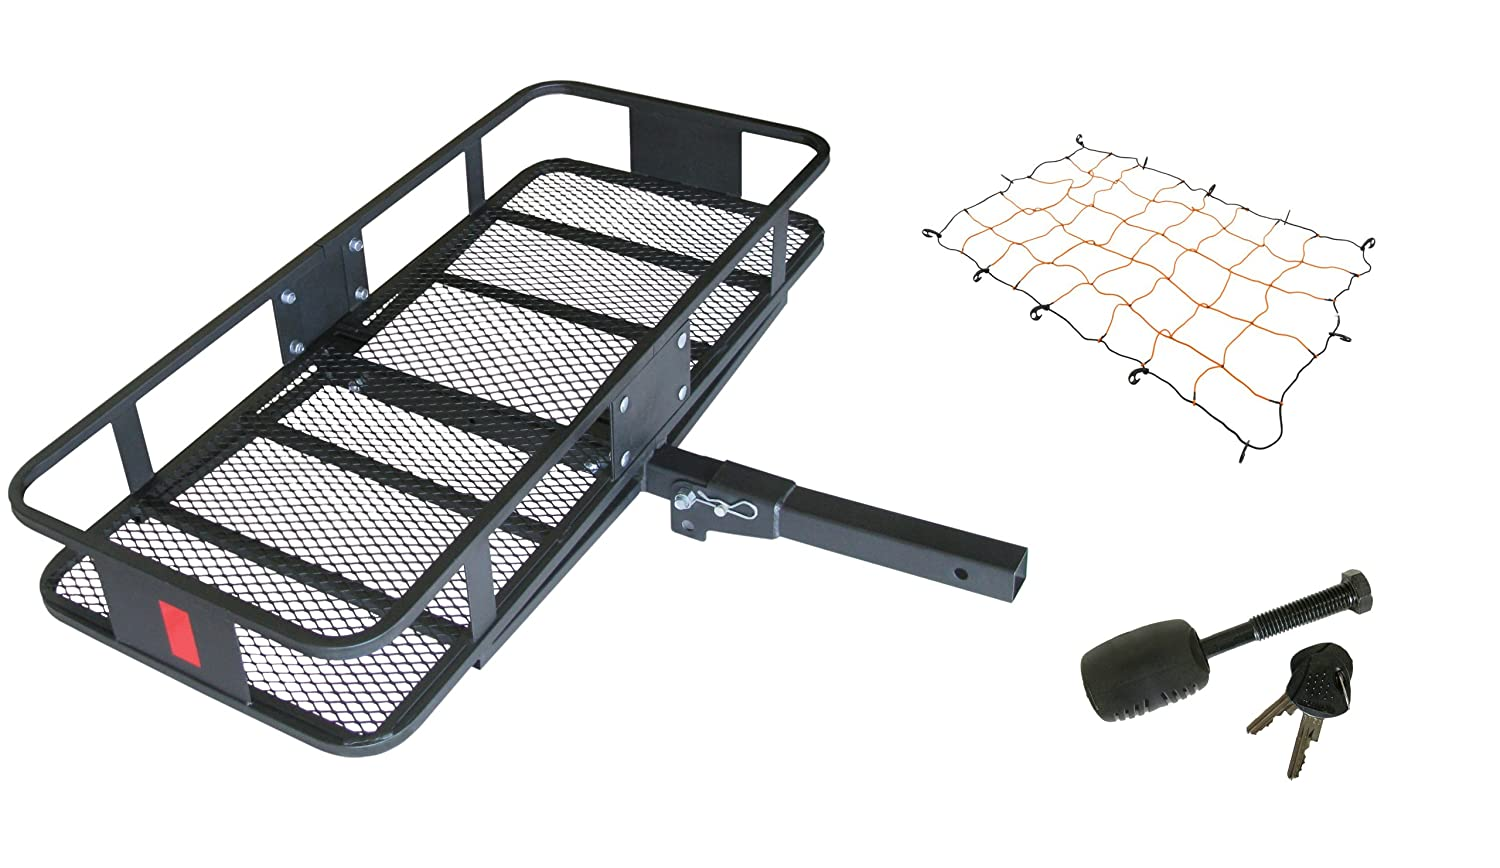 HitchMate 4013 Black Deluxe Fold-Up Cargo Carrier Kit with Cargo Webbing and Hitch Lock